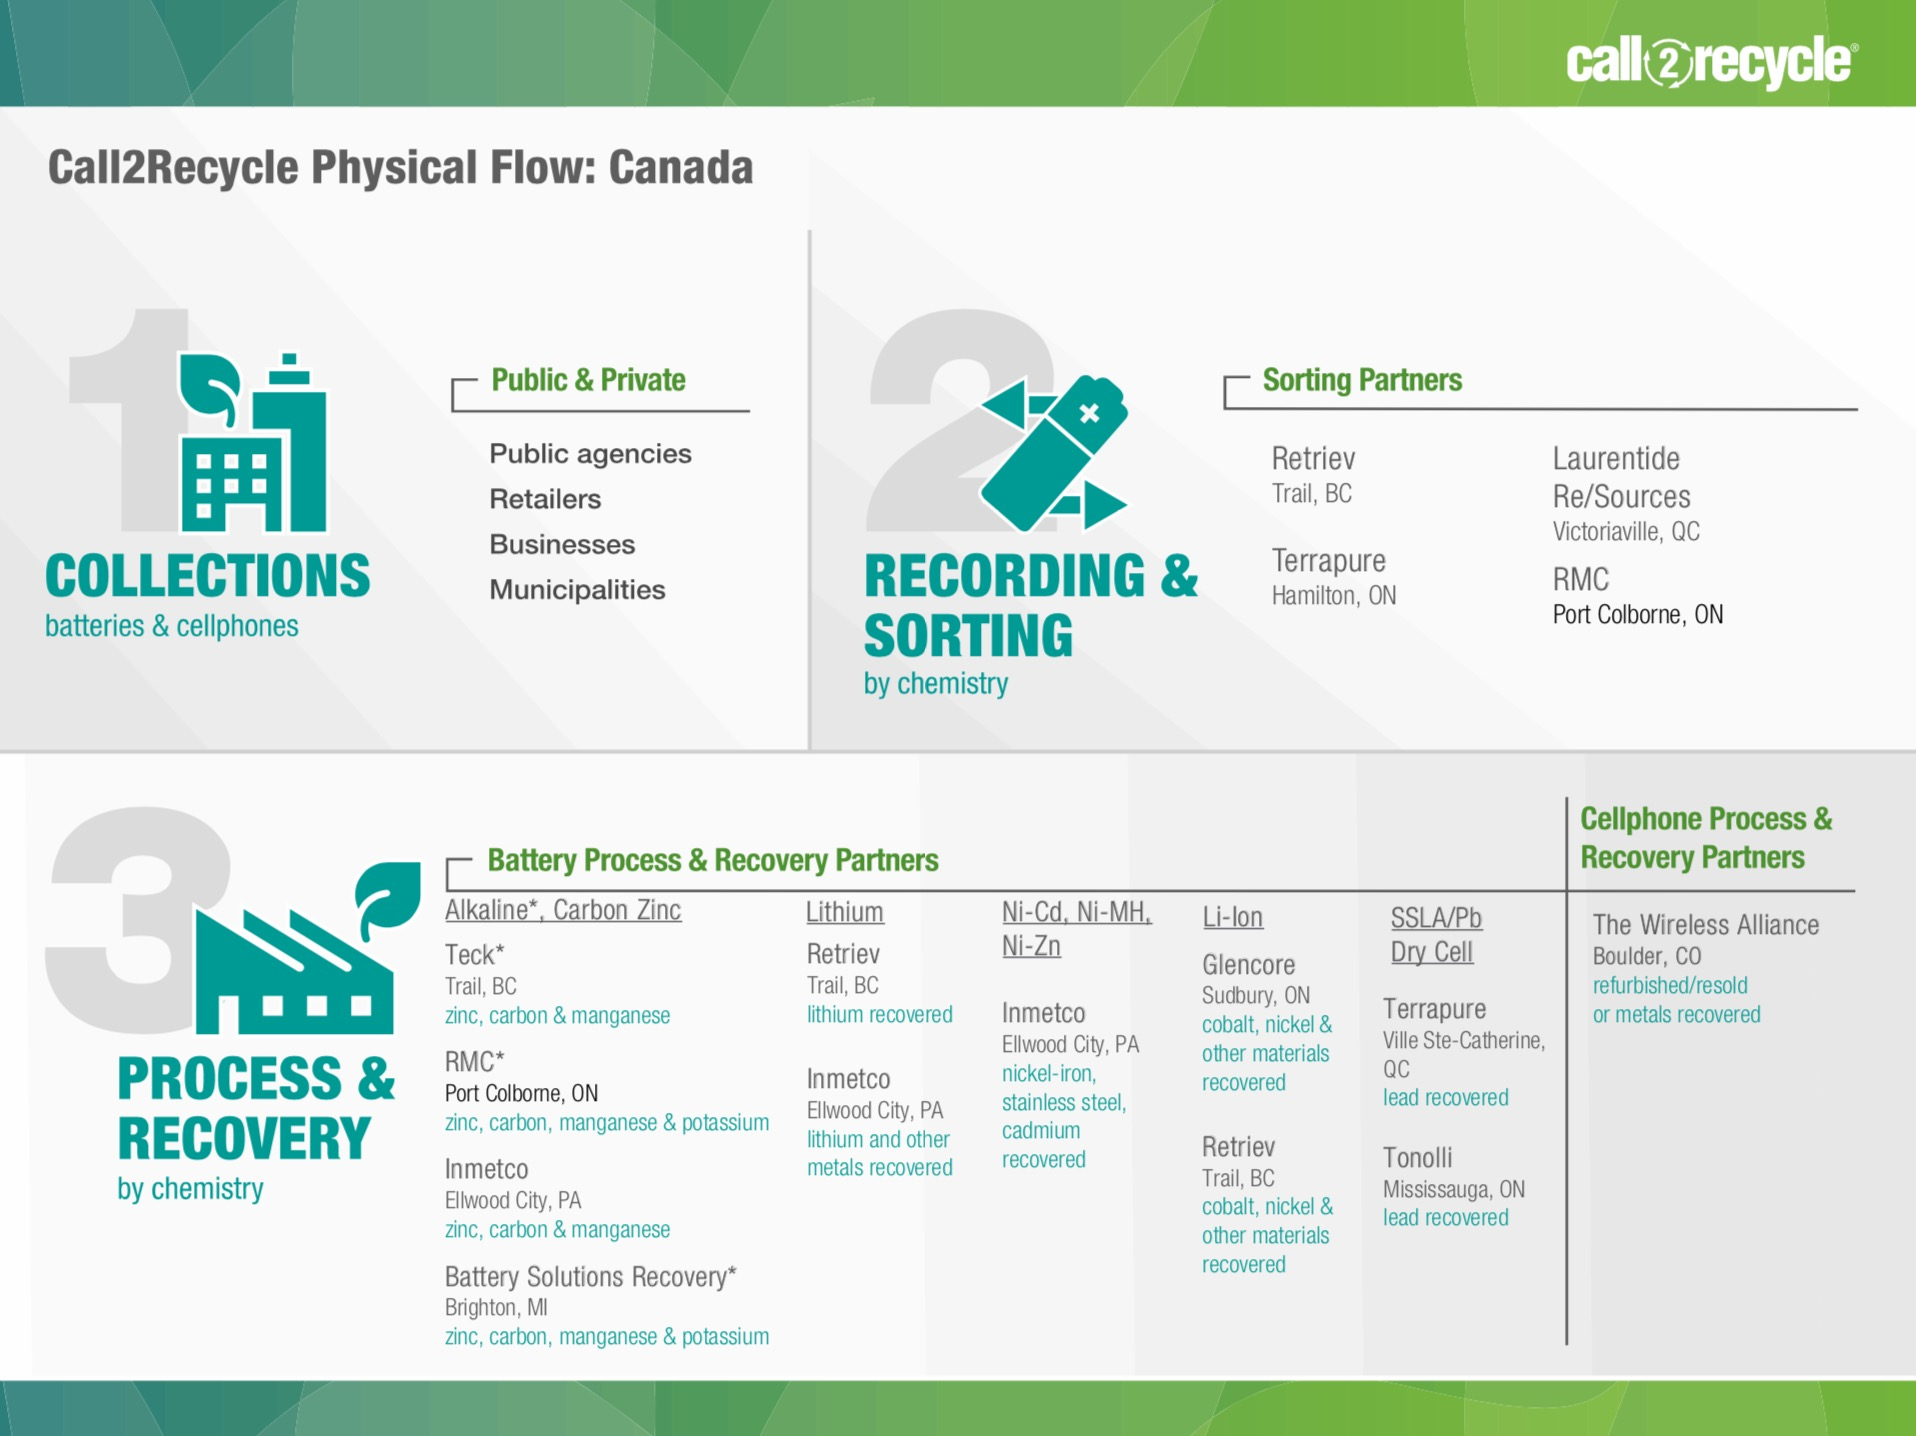 canada recycling process flowchart - Recycling Flow Chart